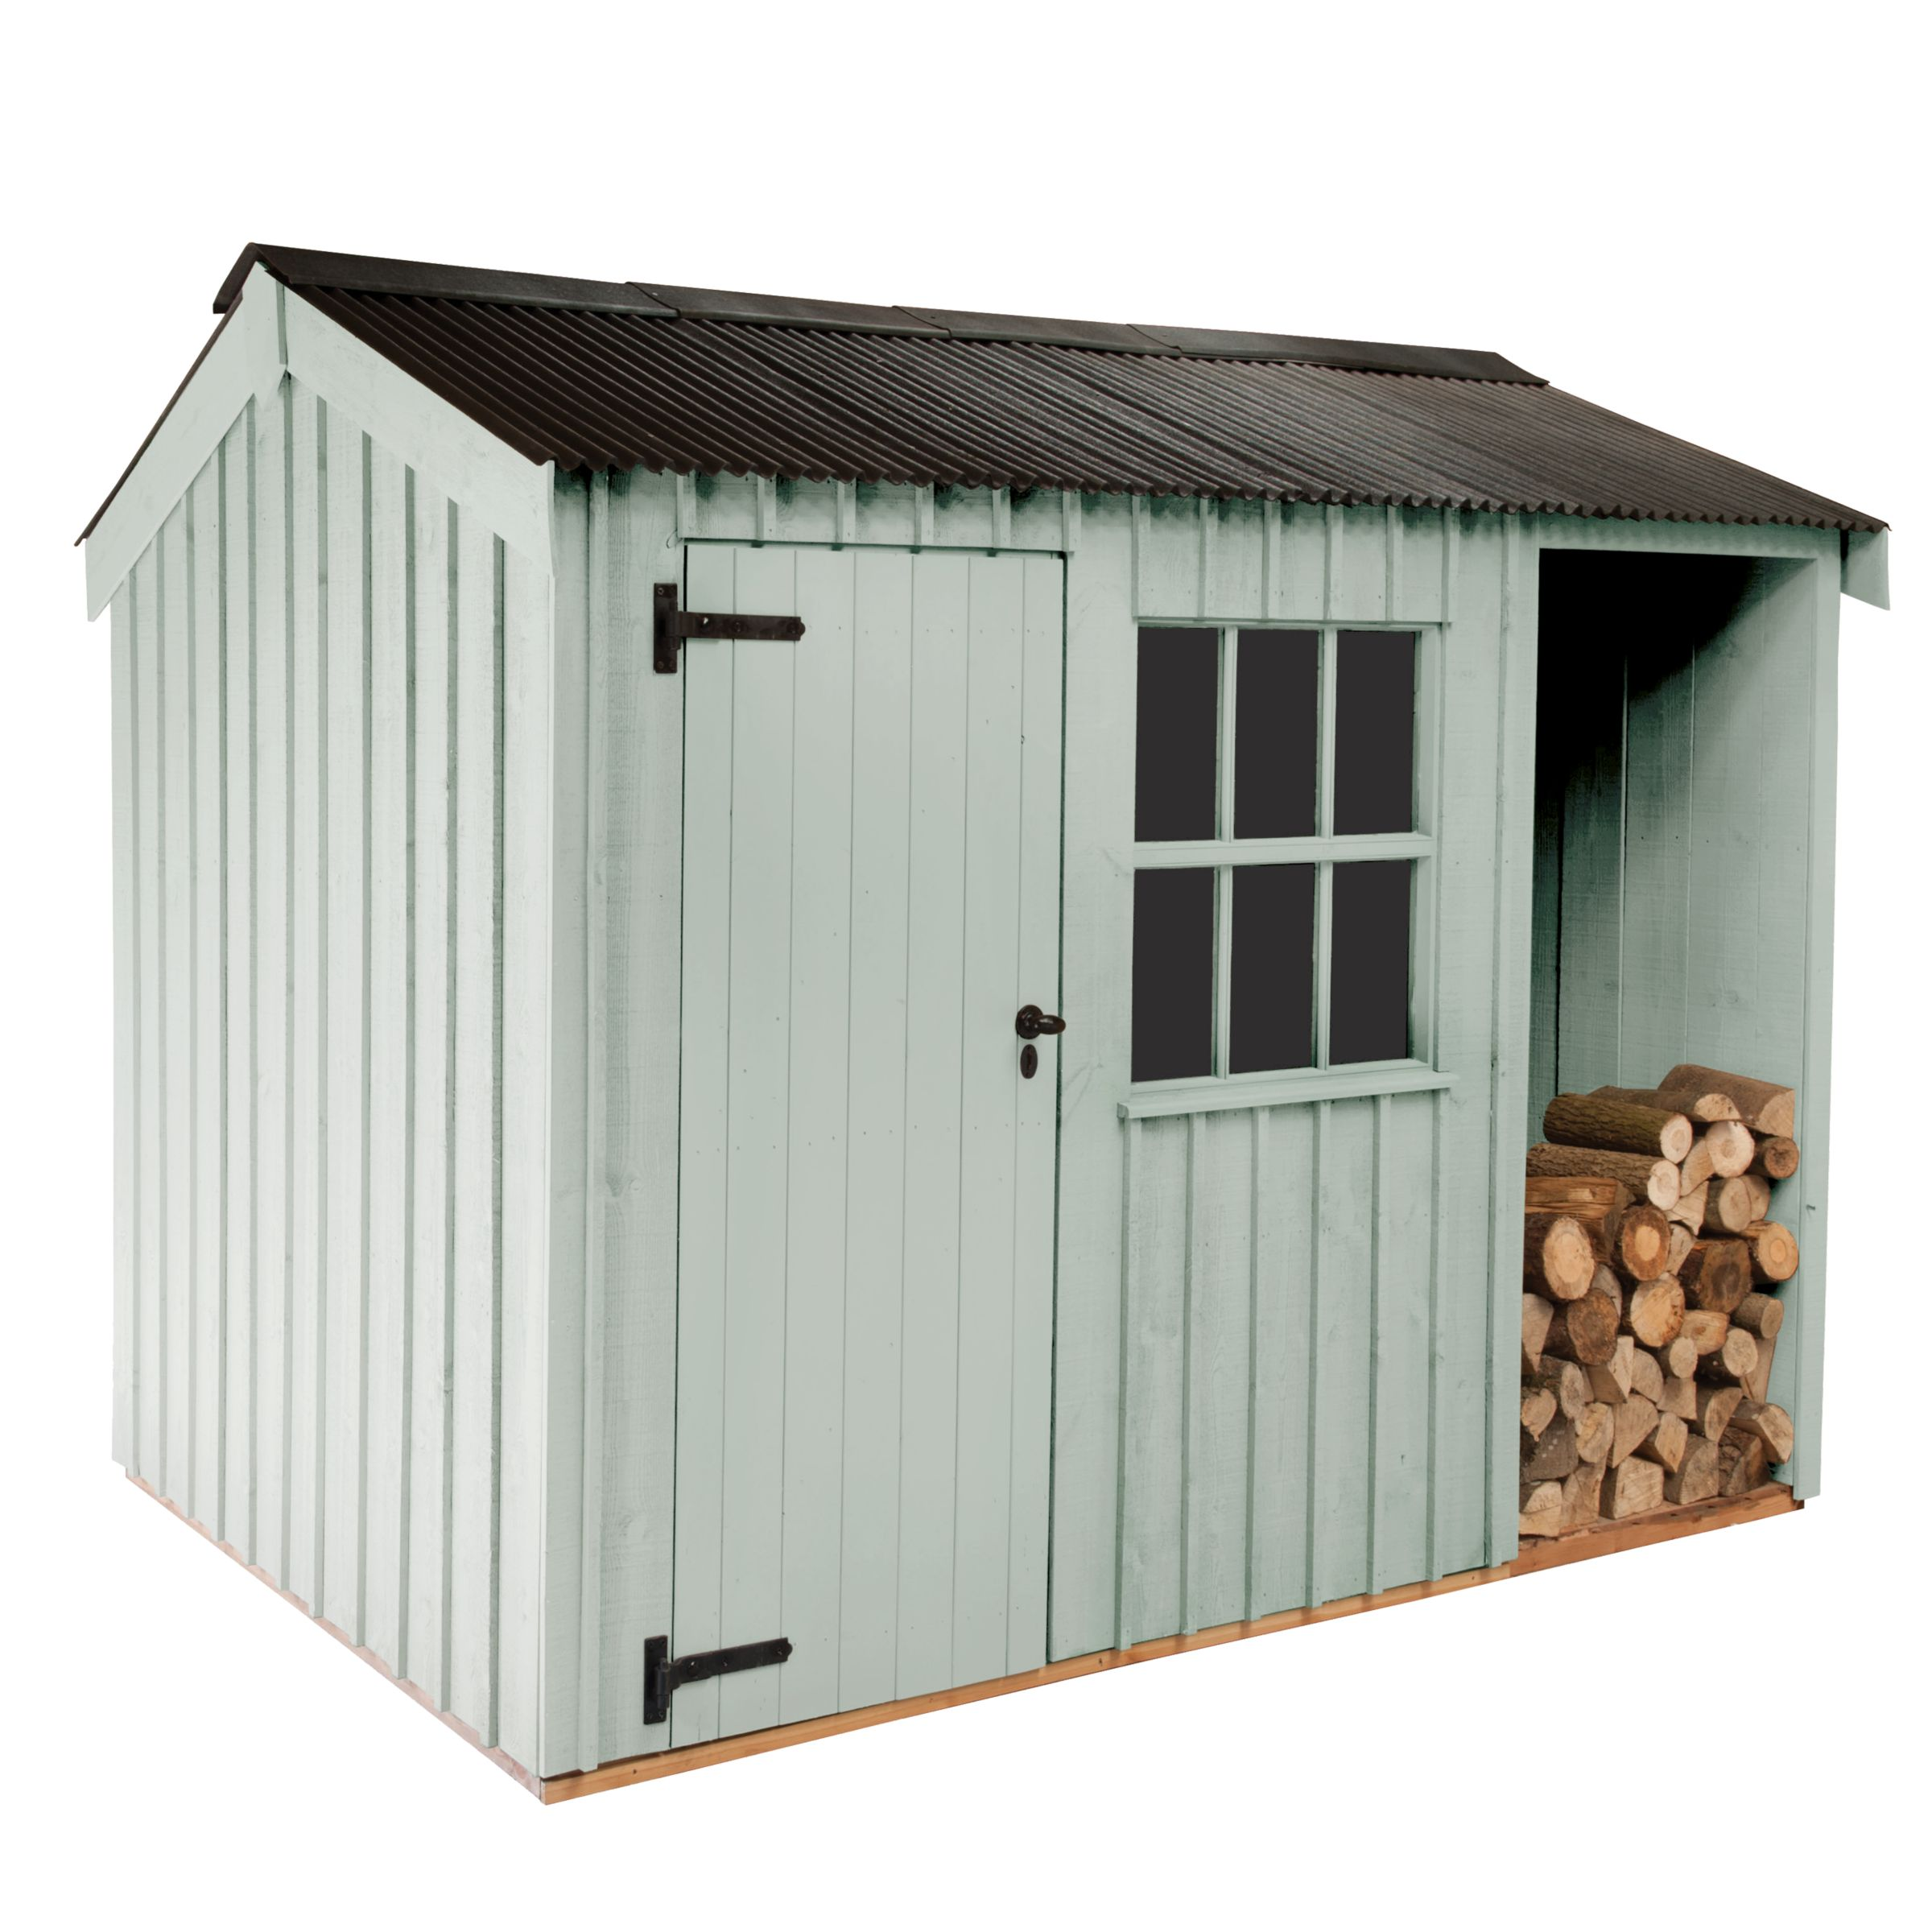 National Trust By Crane Blickling Fsc Garden Shed, 1.8x3m